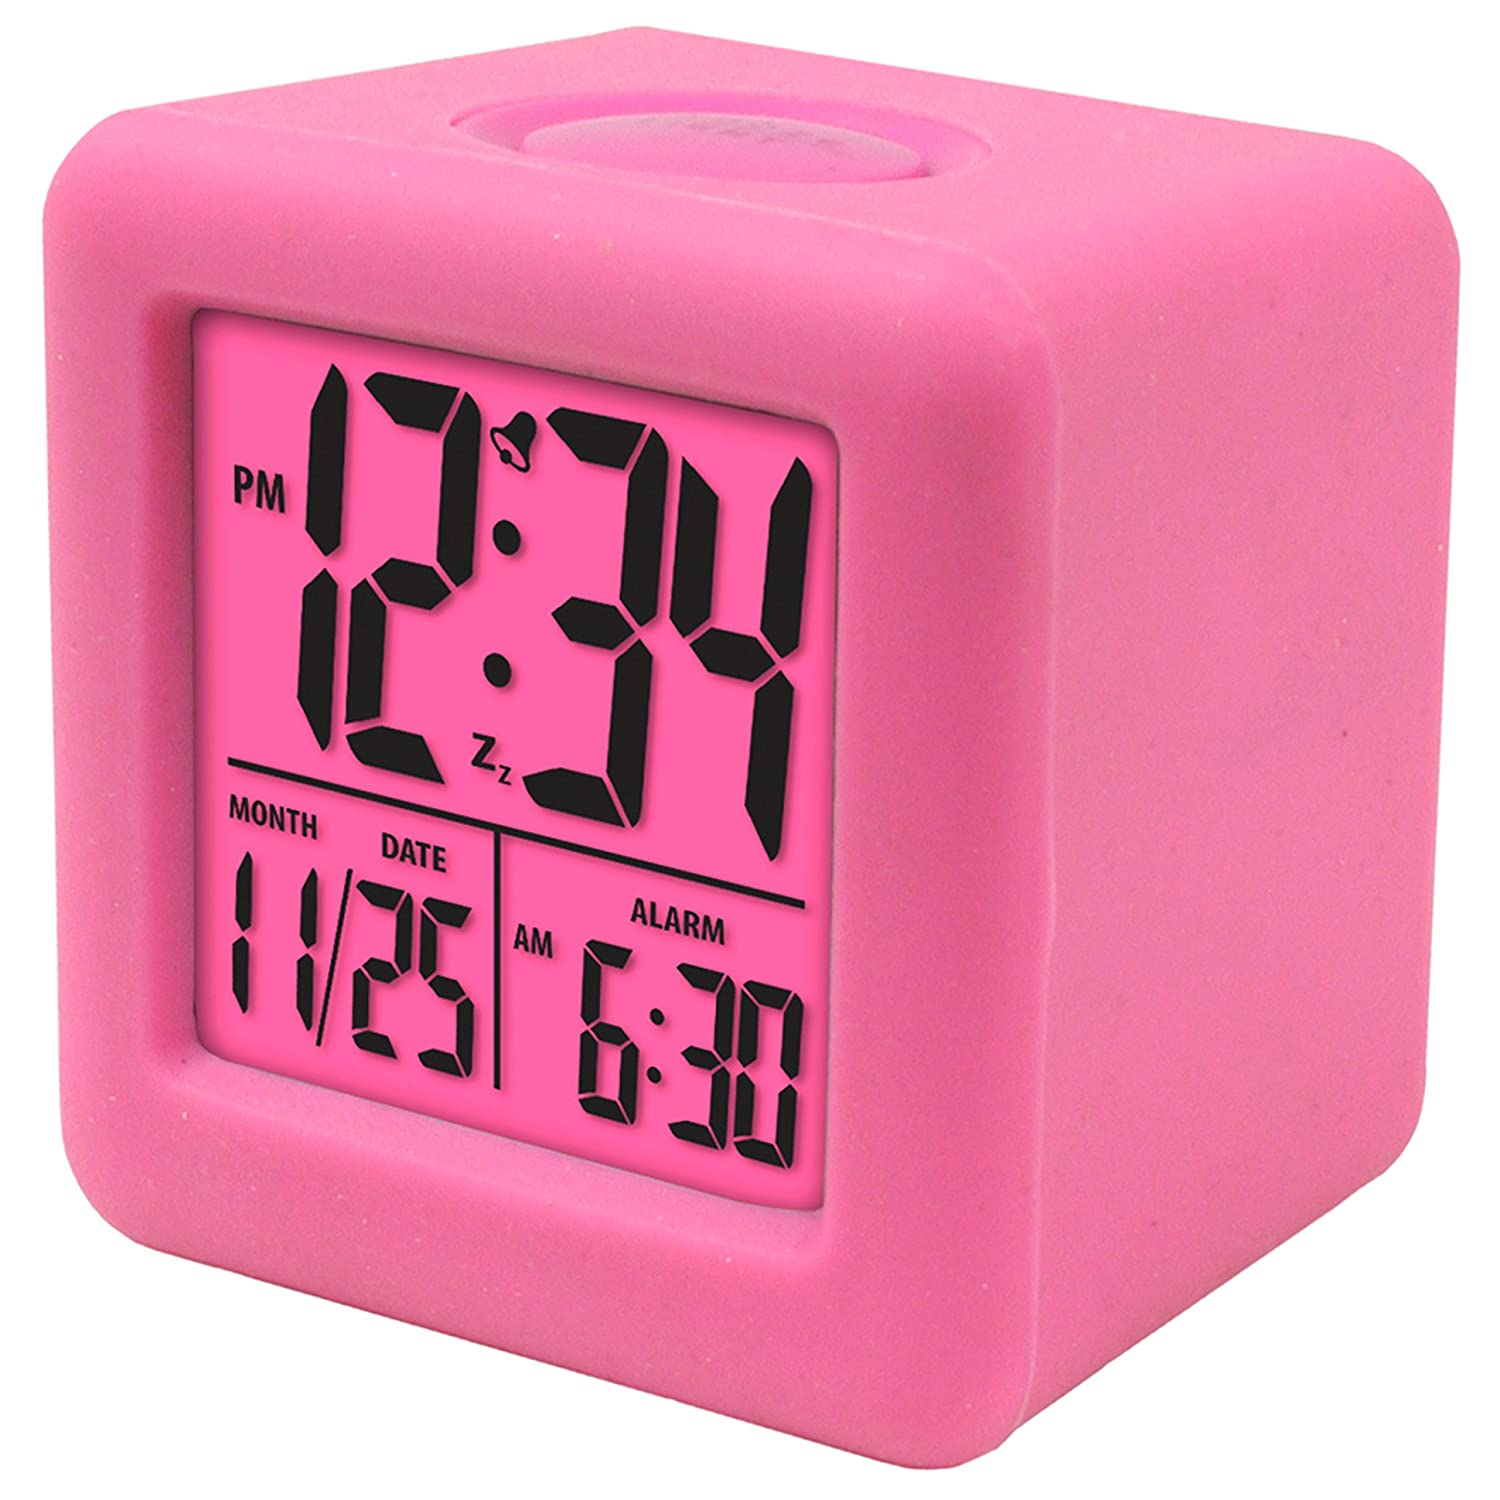 amazoncom equity by la crosse  soft cube lcd alarm clock  - amazoncom equity by la crosse  soft cube lcd alarm clock pink home kitchen